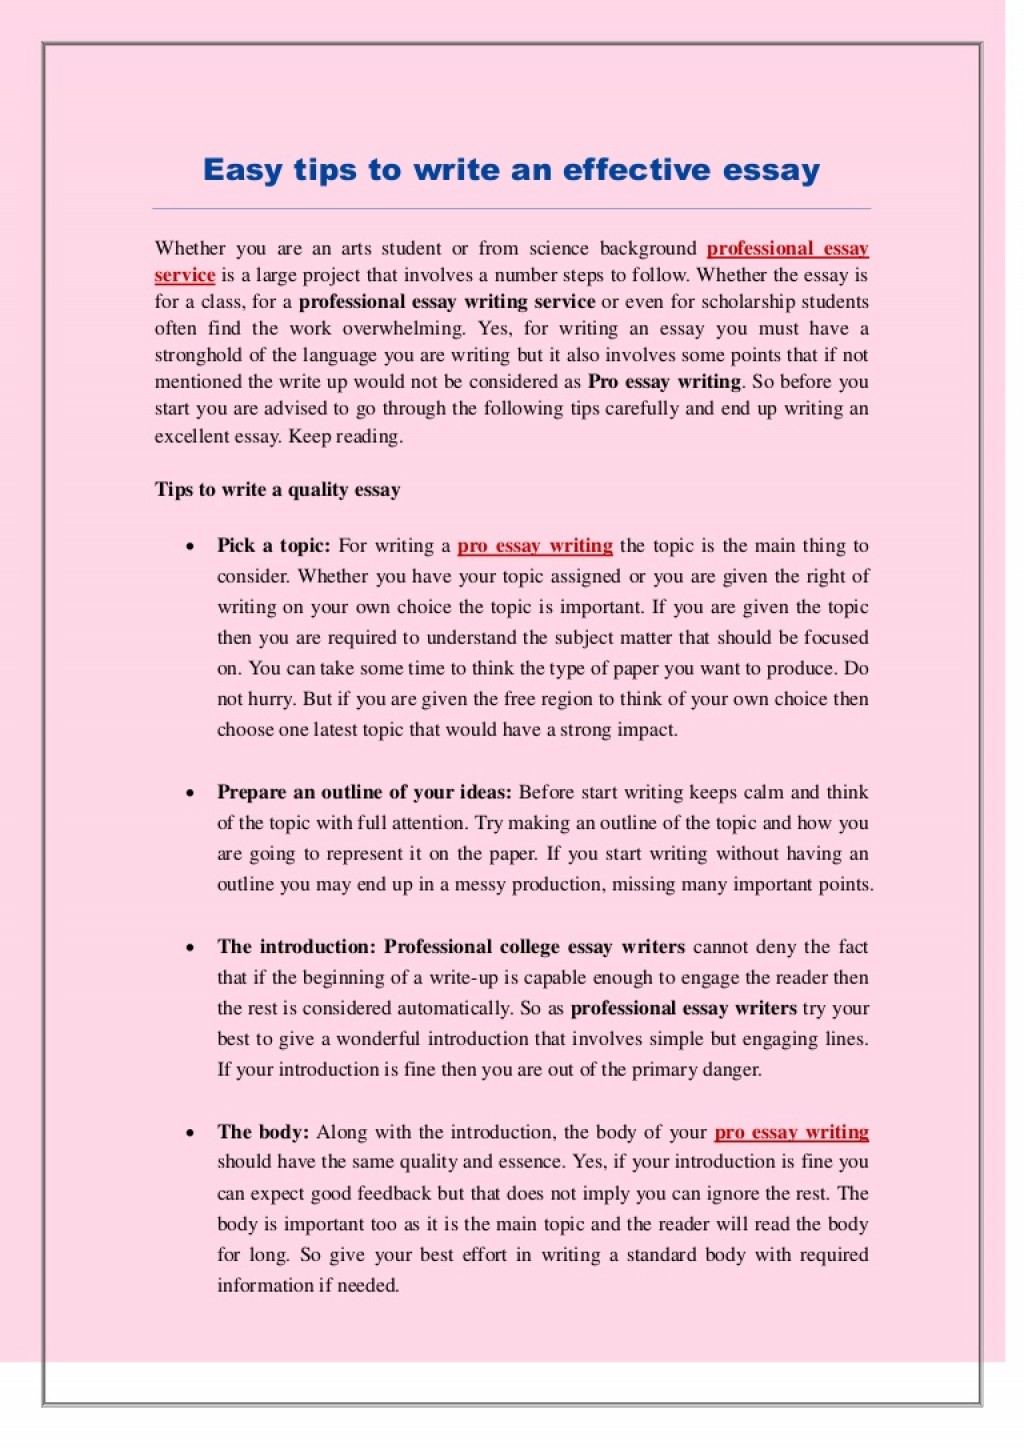 015 Tips To Write Good Essay Example Easytipstowriteaneffectiveessay Thumbnail Marvelous A Narrative Persuasive In Exam Large